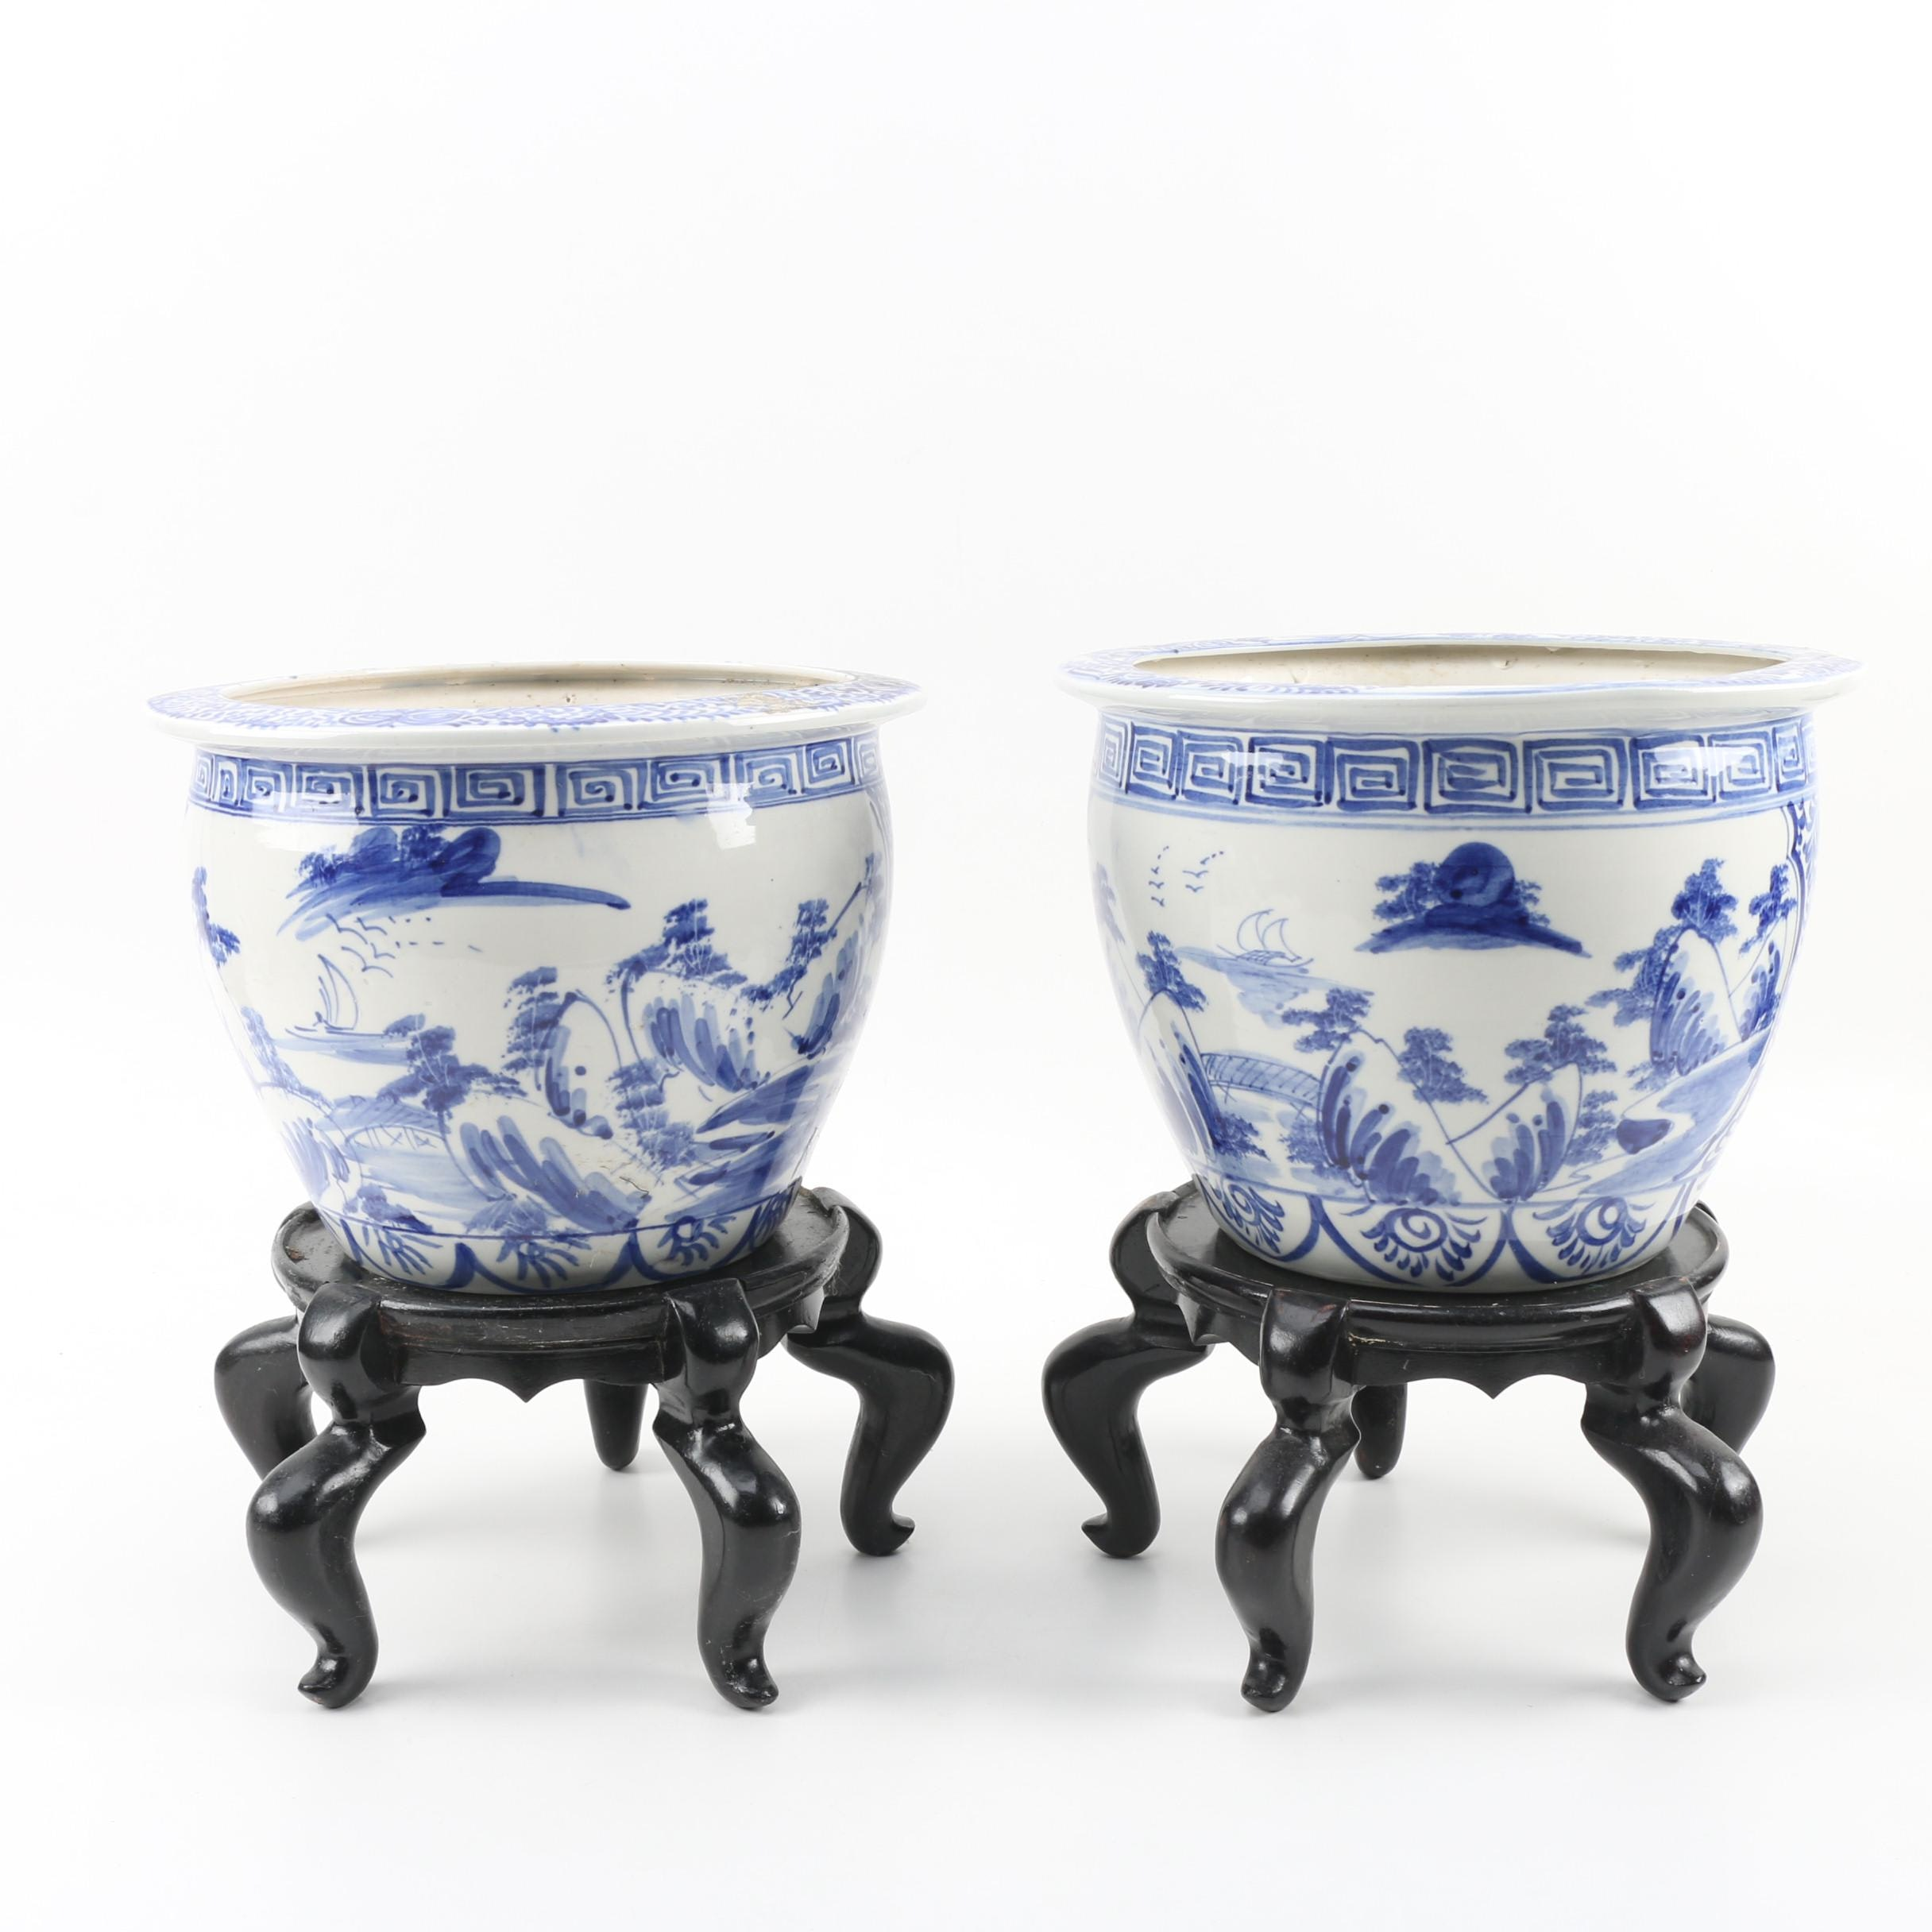 Chinese Porcelain Fish Bowl Planters With Wood Stands Ebth